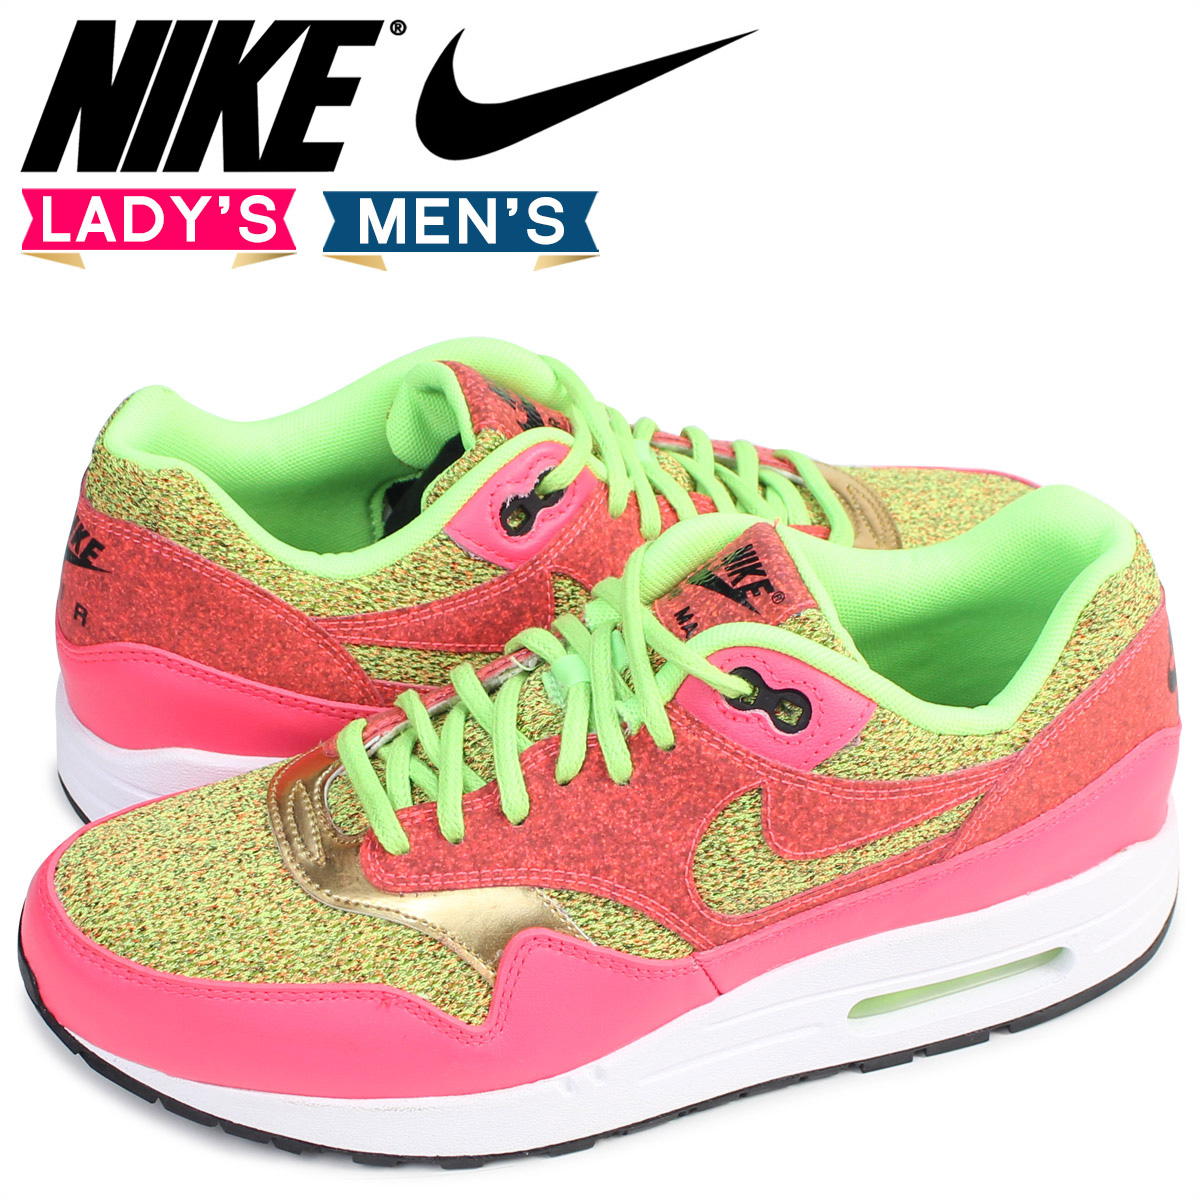 NIKE Kie Ney AMAX 1 Lady's sneakers WMNS AIR MAX 1 SE GHOST GREEN  881,101-300 ghost green men shoes pink [8/9 Shinnyu load] [178]